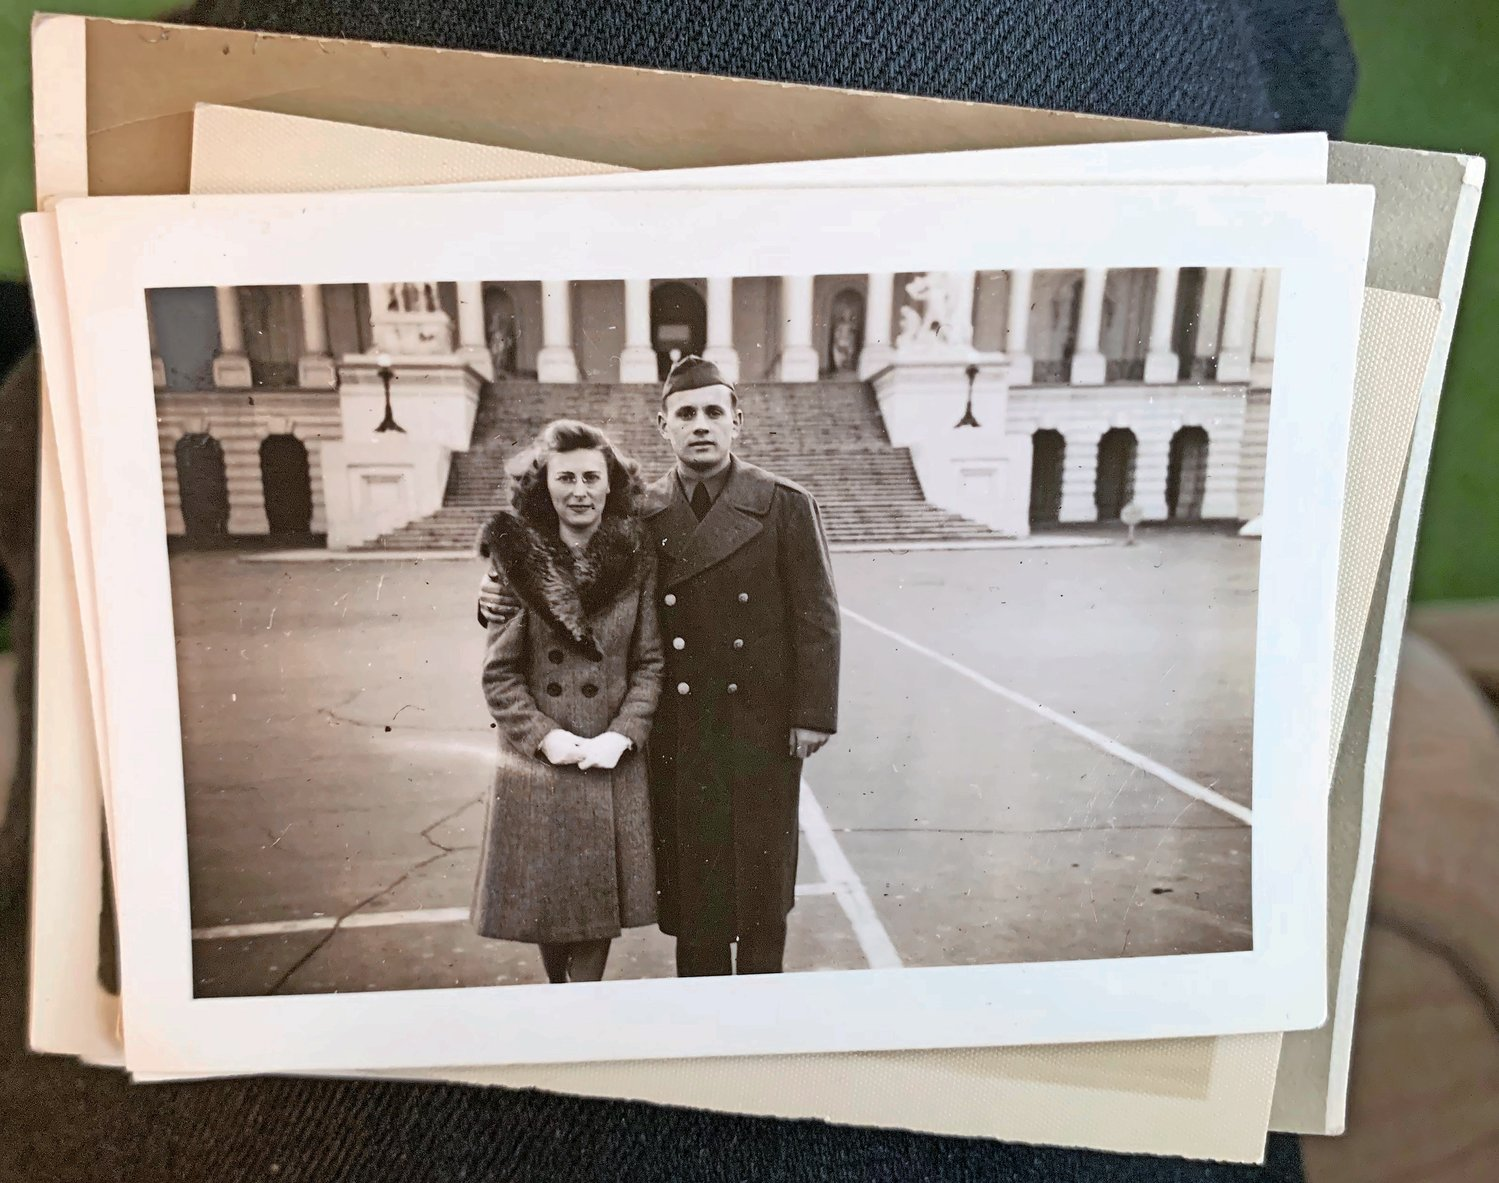 Conlin with his wife, Peggy, outside the U.S. Capitol in an undated photo.